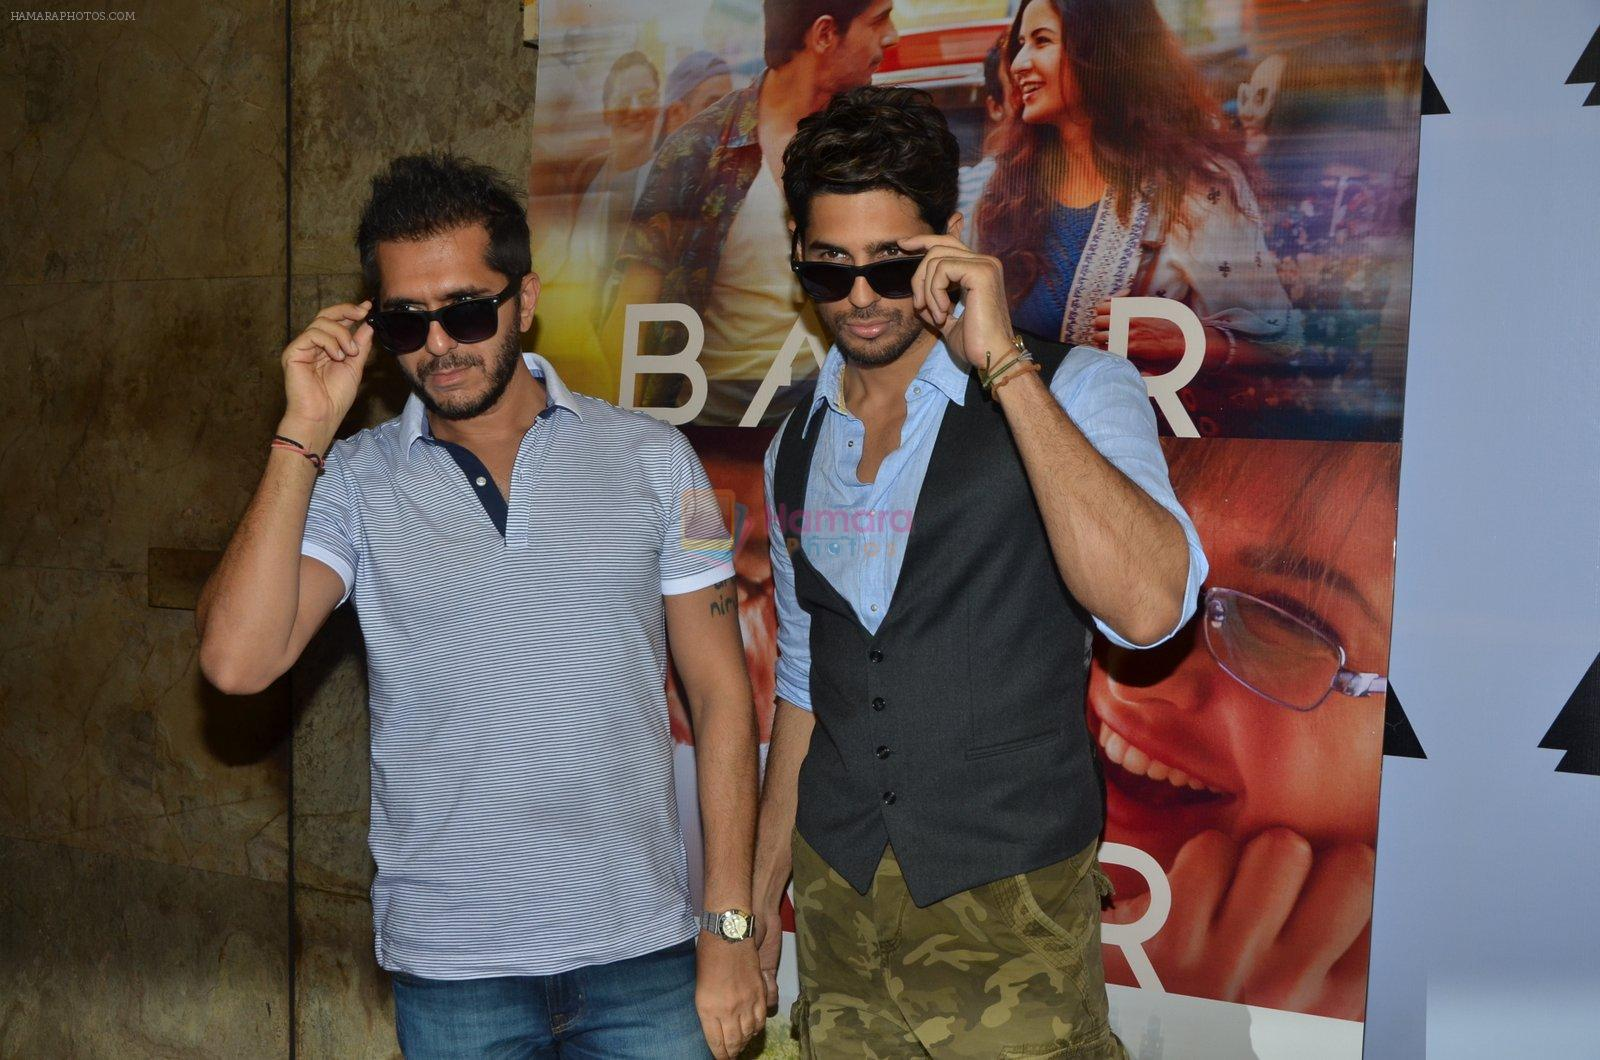 Sidharth Malhotra, Ritesh Sidhwani promote film Baar Baar Dekho on August 2nd 2016